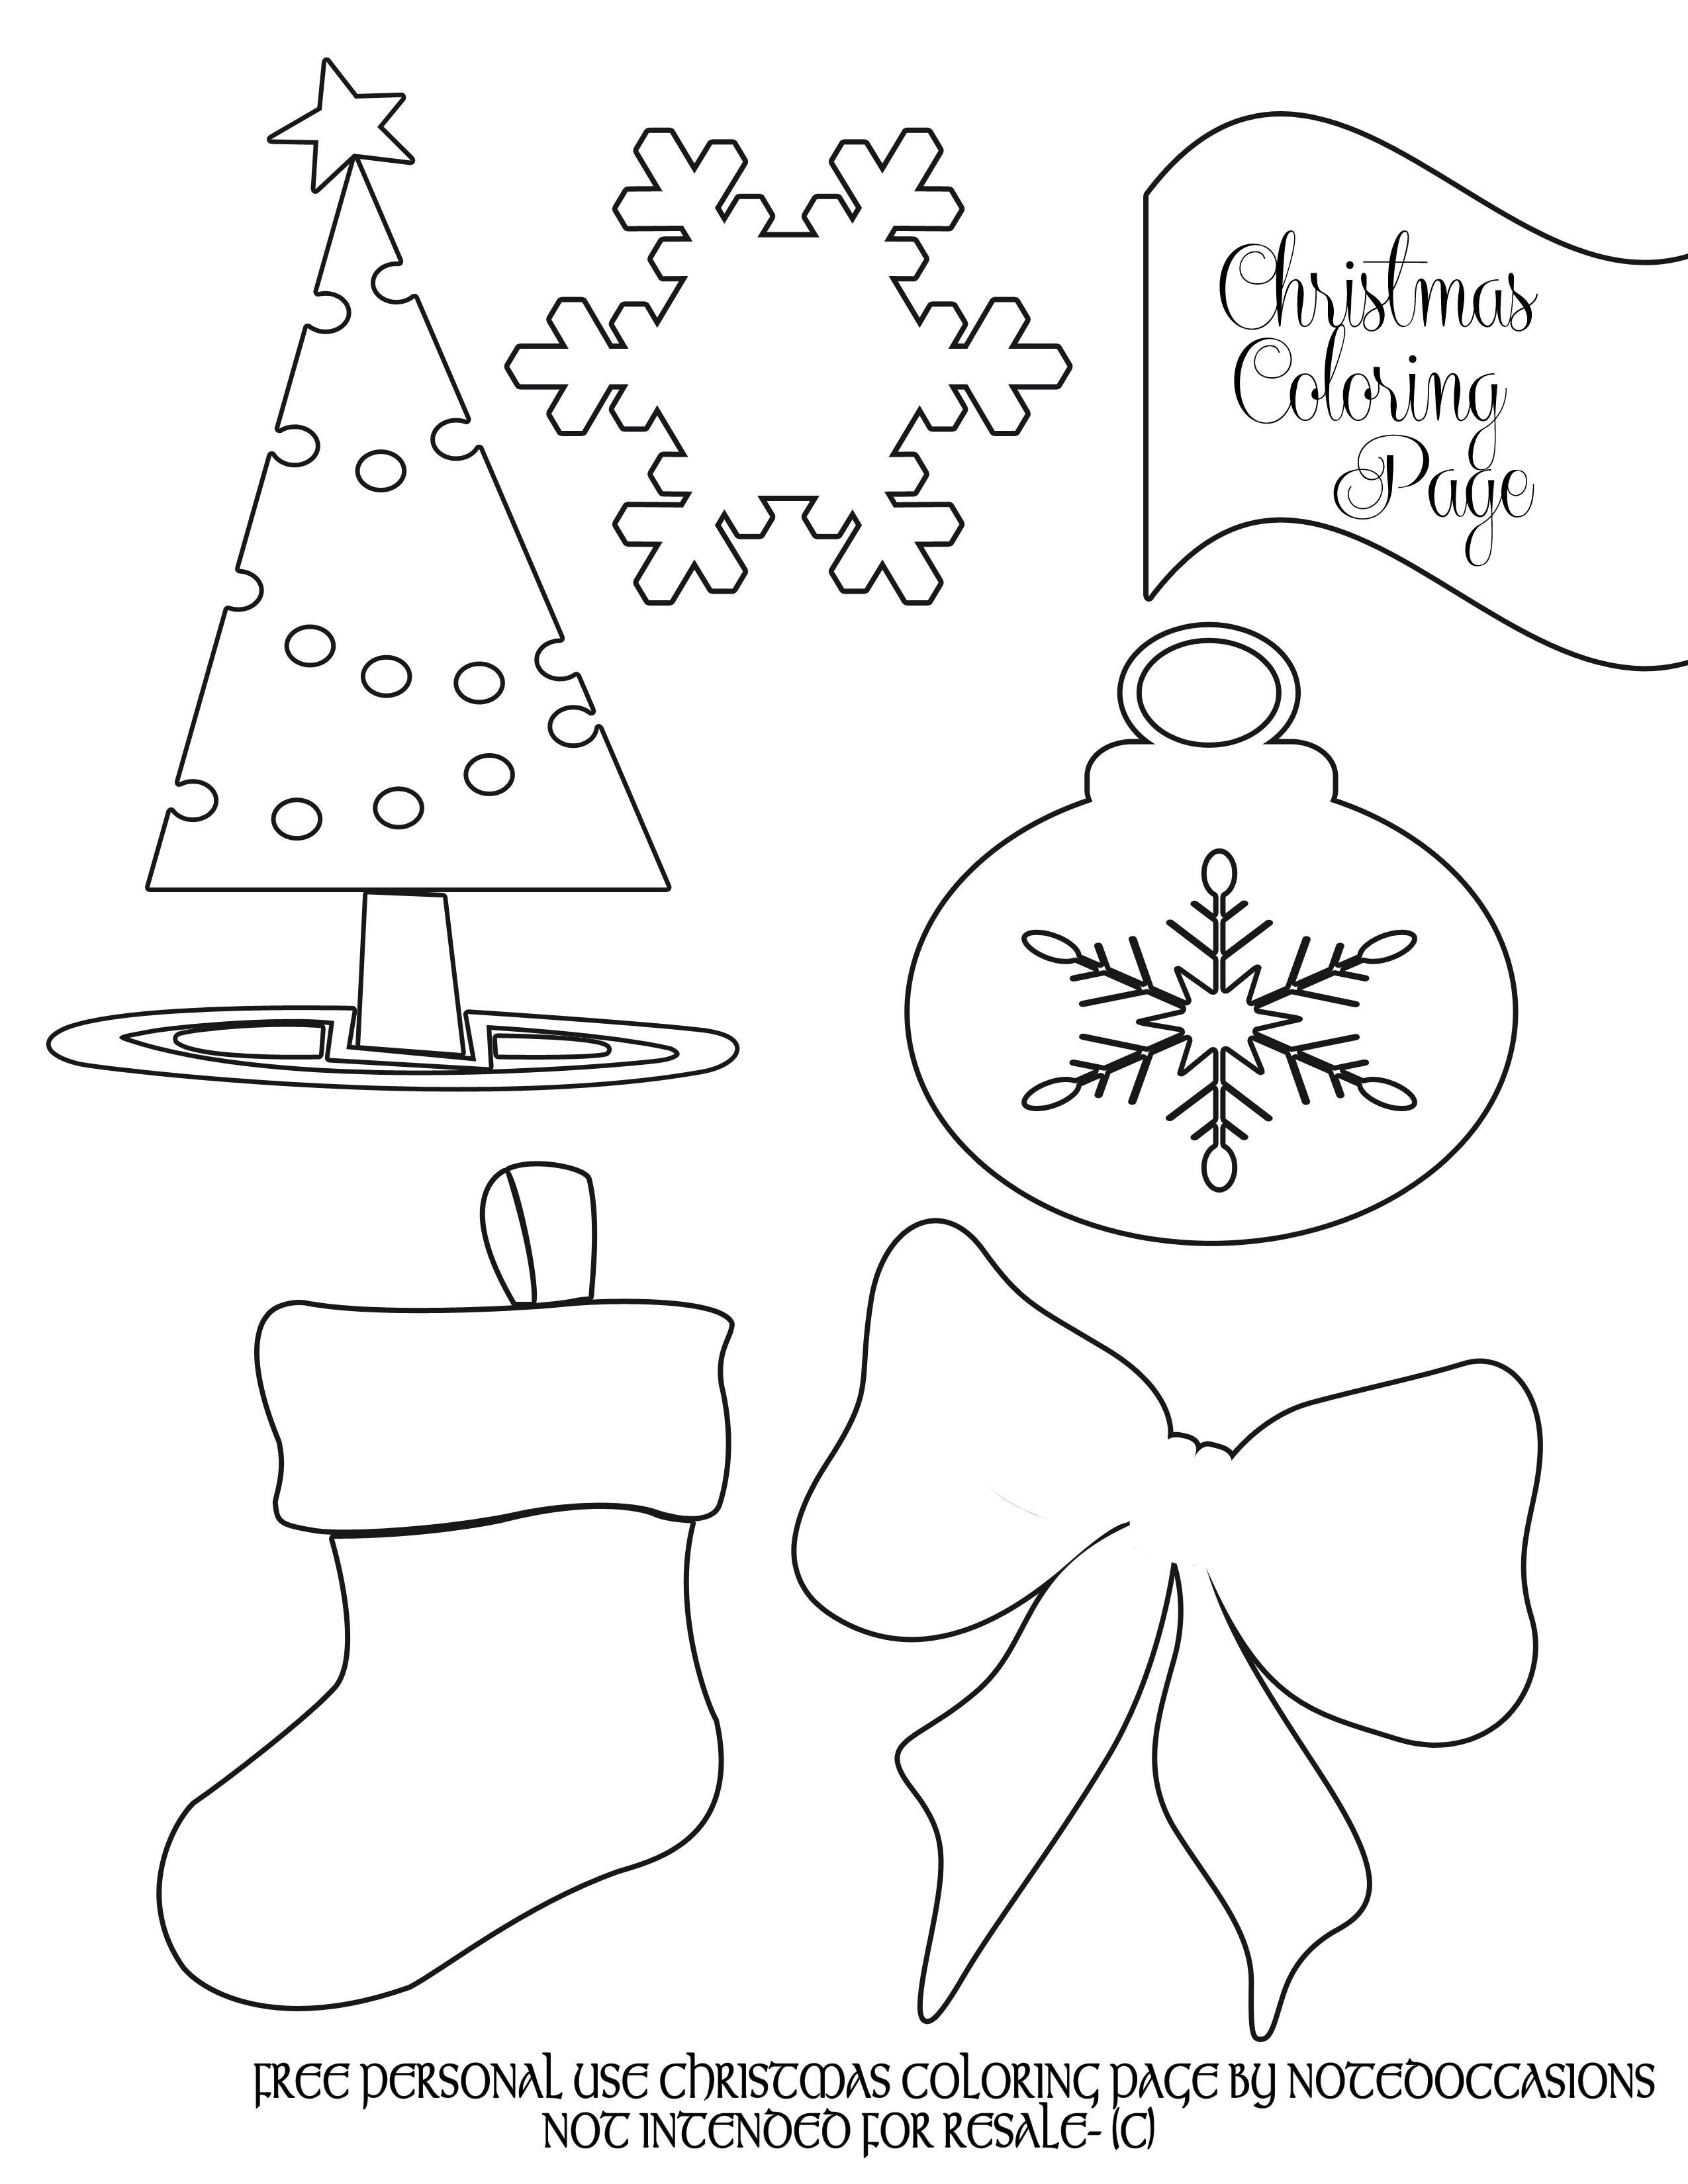 Christmas Coloring Pages For Seniors With Party Simplicity Free To Print